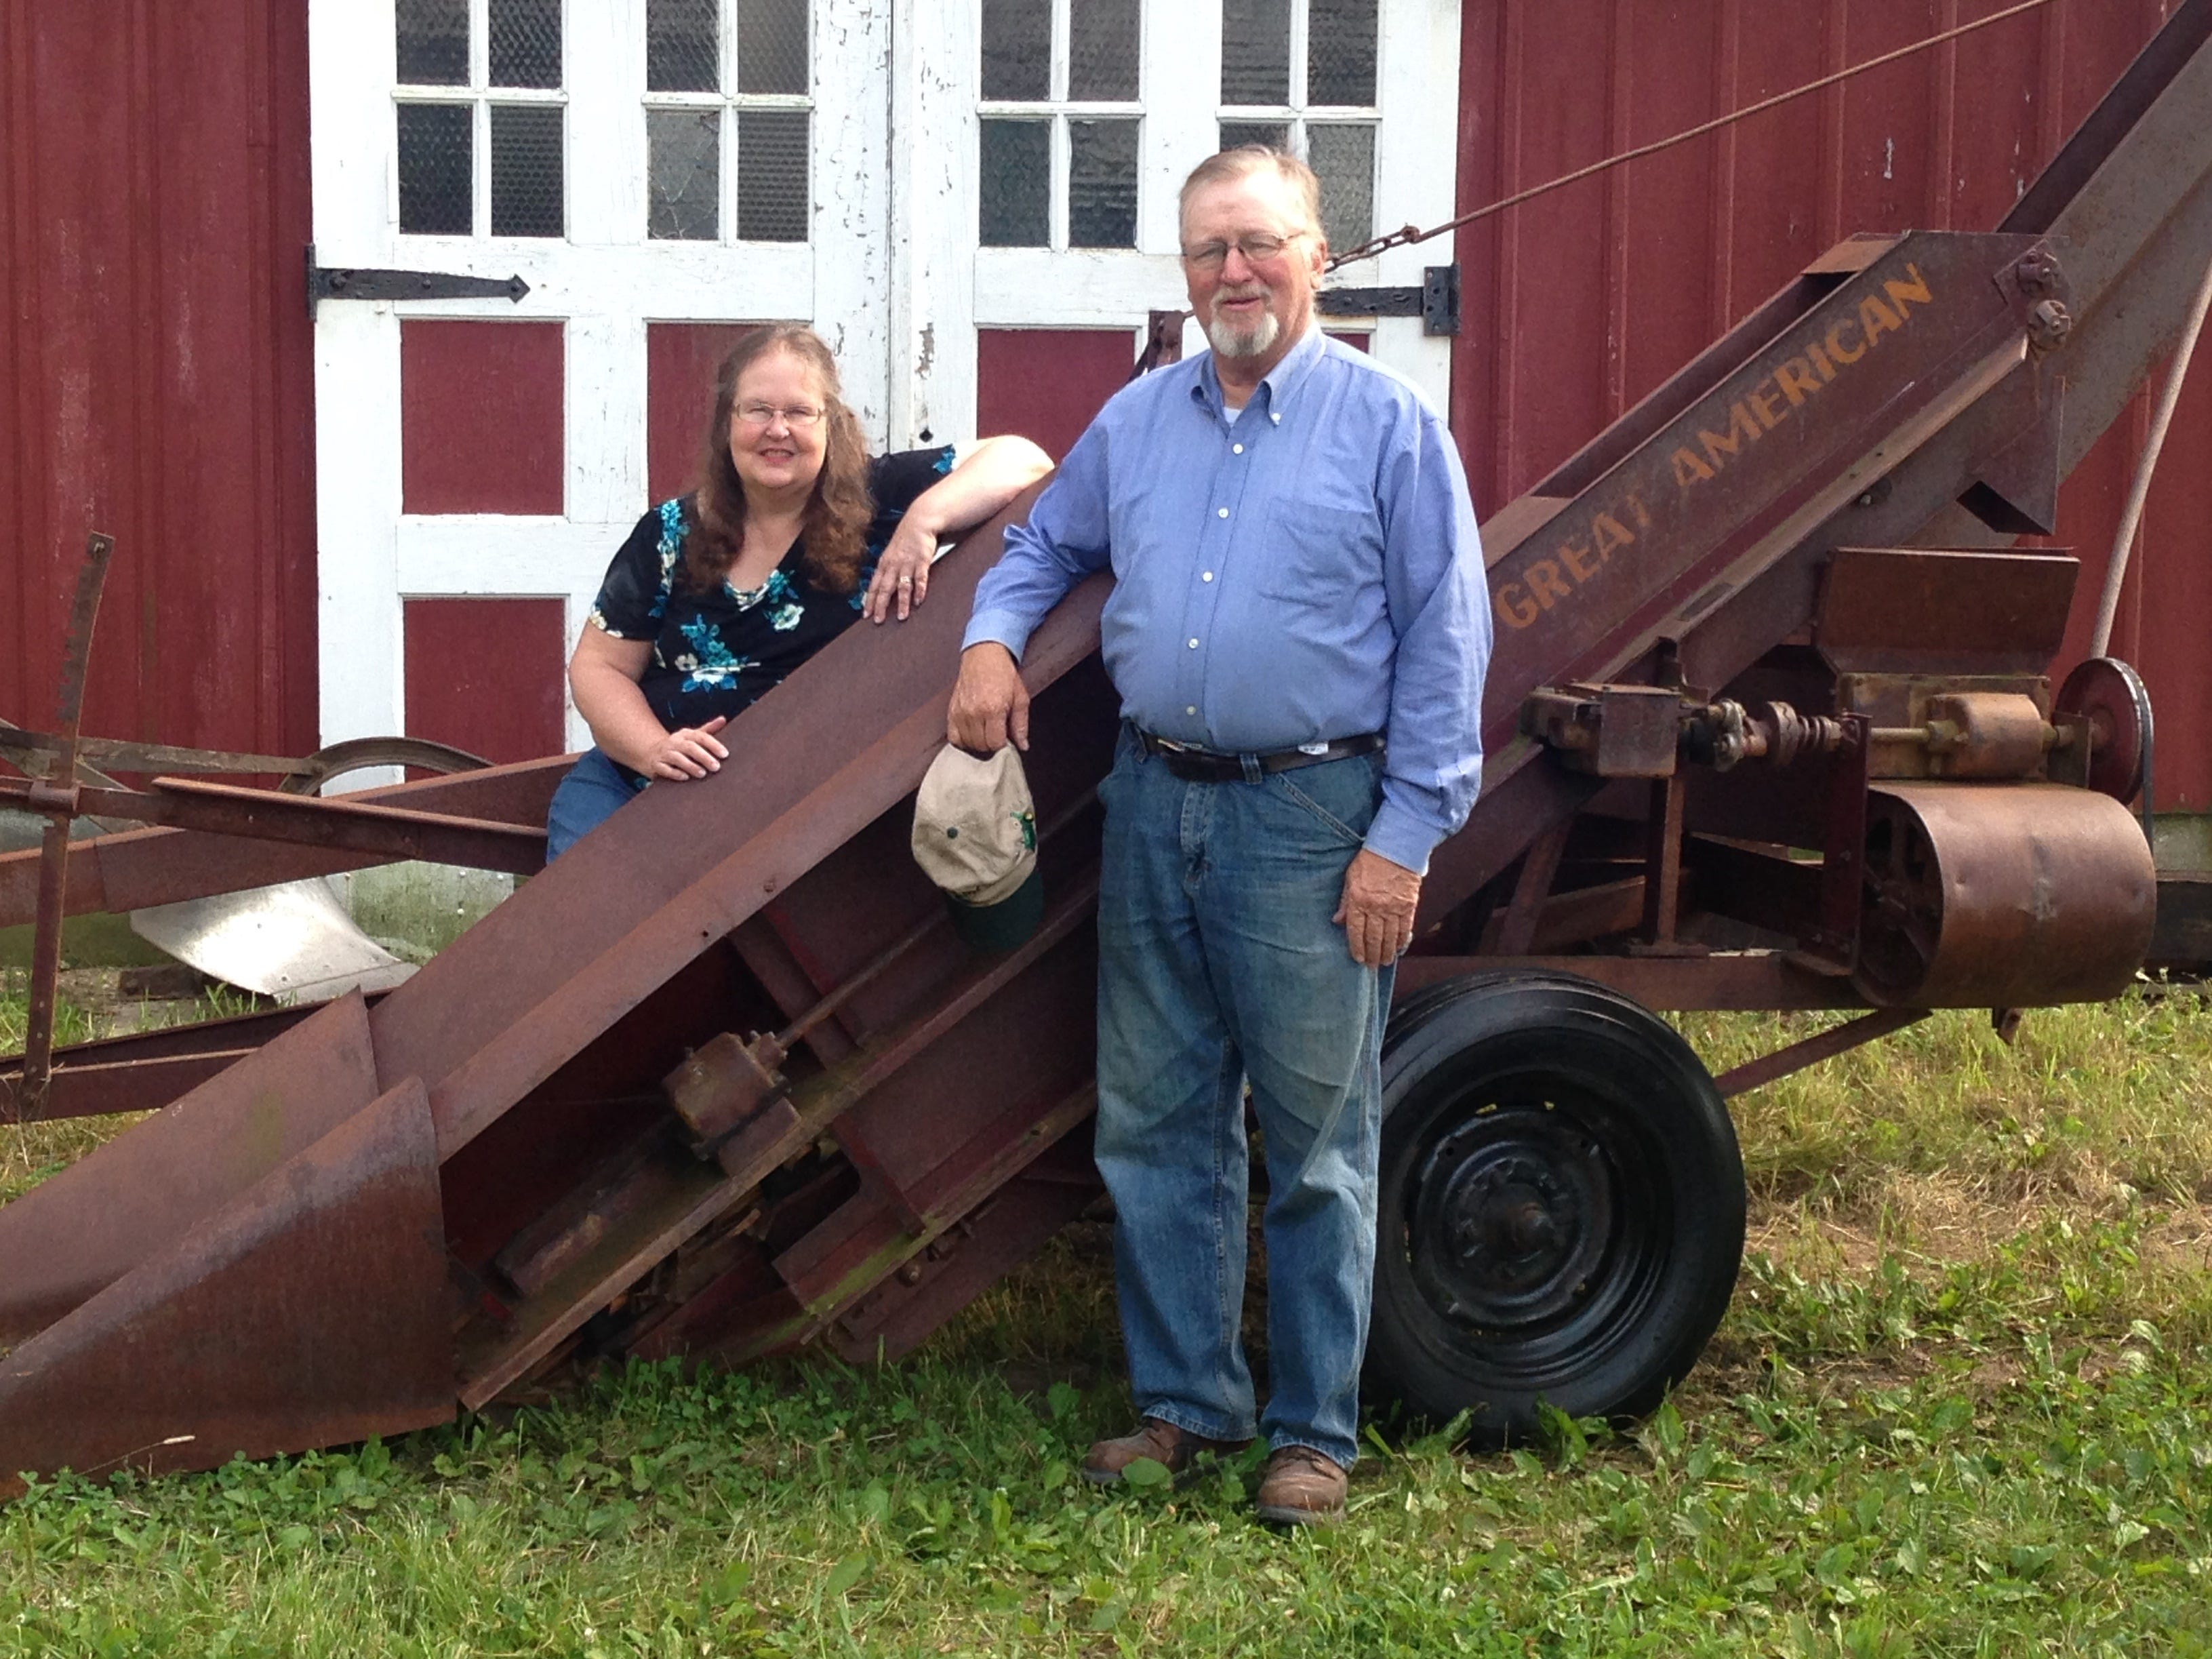 Phyllis and Bob Johnson, of rural Sycamore, Ill. stand by one of Bob's 25 corn pickers in his collection.